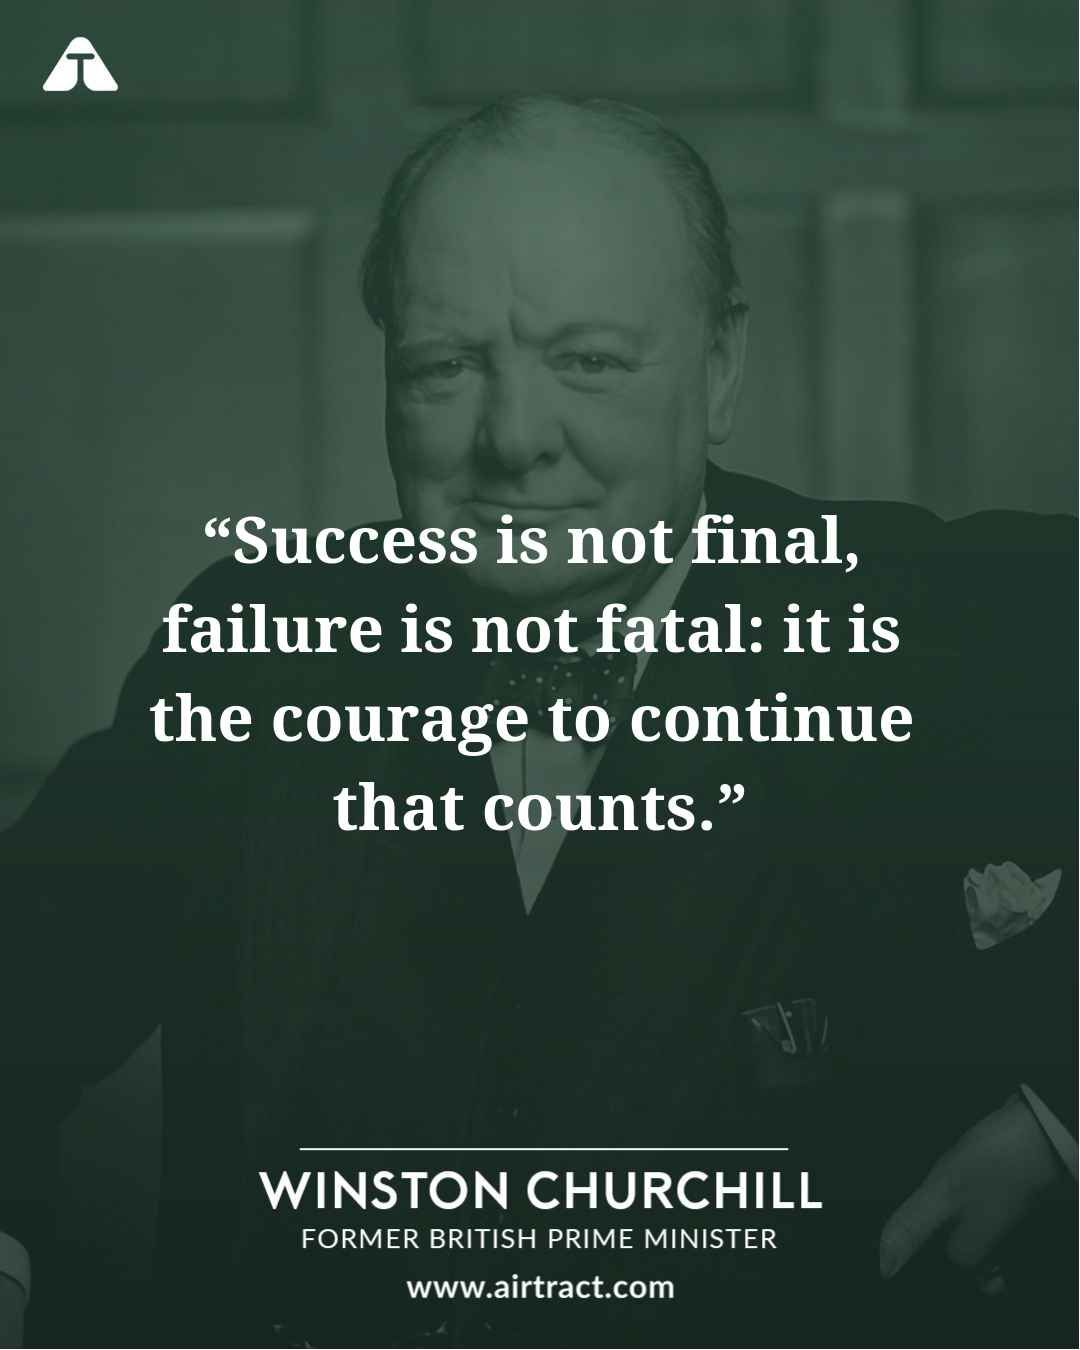 Success Is Not Final Failure Is Not Fatal It Is The Courage To Continue That Counts Winston Churchill Quotes Inspirational Quotes Winston Churchill Quotes